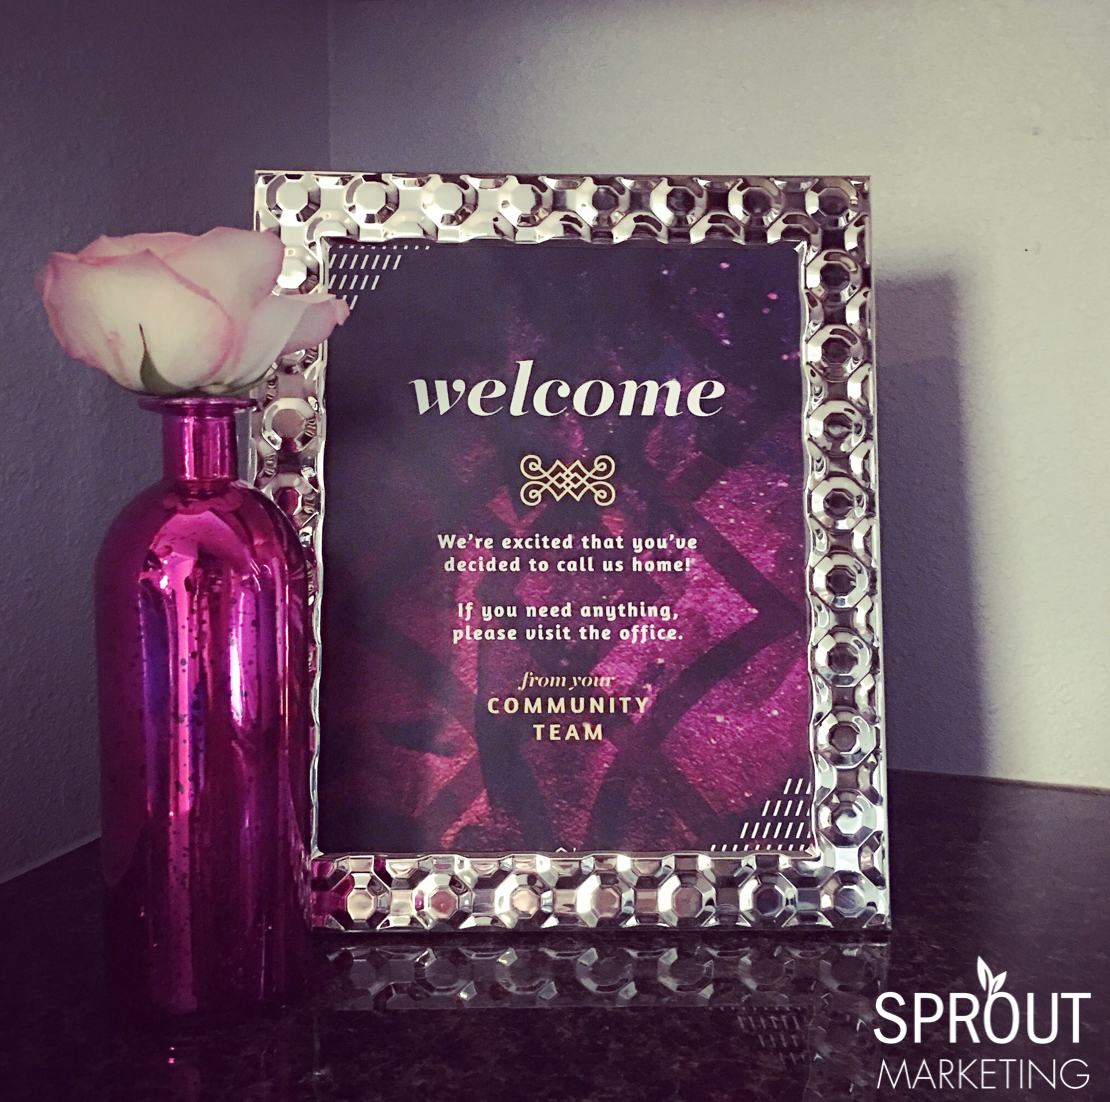 Want to welcome all of your new residents at one time? Stage a welcome center in your leasing office with a framed welcome design, fresh flowers, and some sweet treats! Invite all new residents to stop by for a treat and to meet their neighbors.